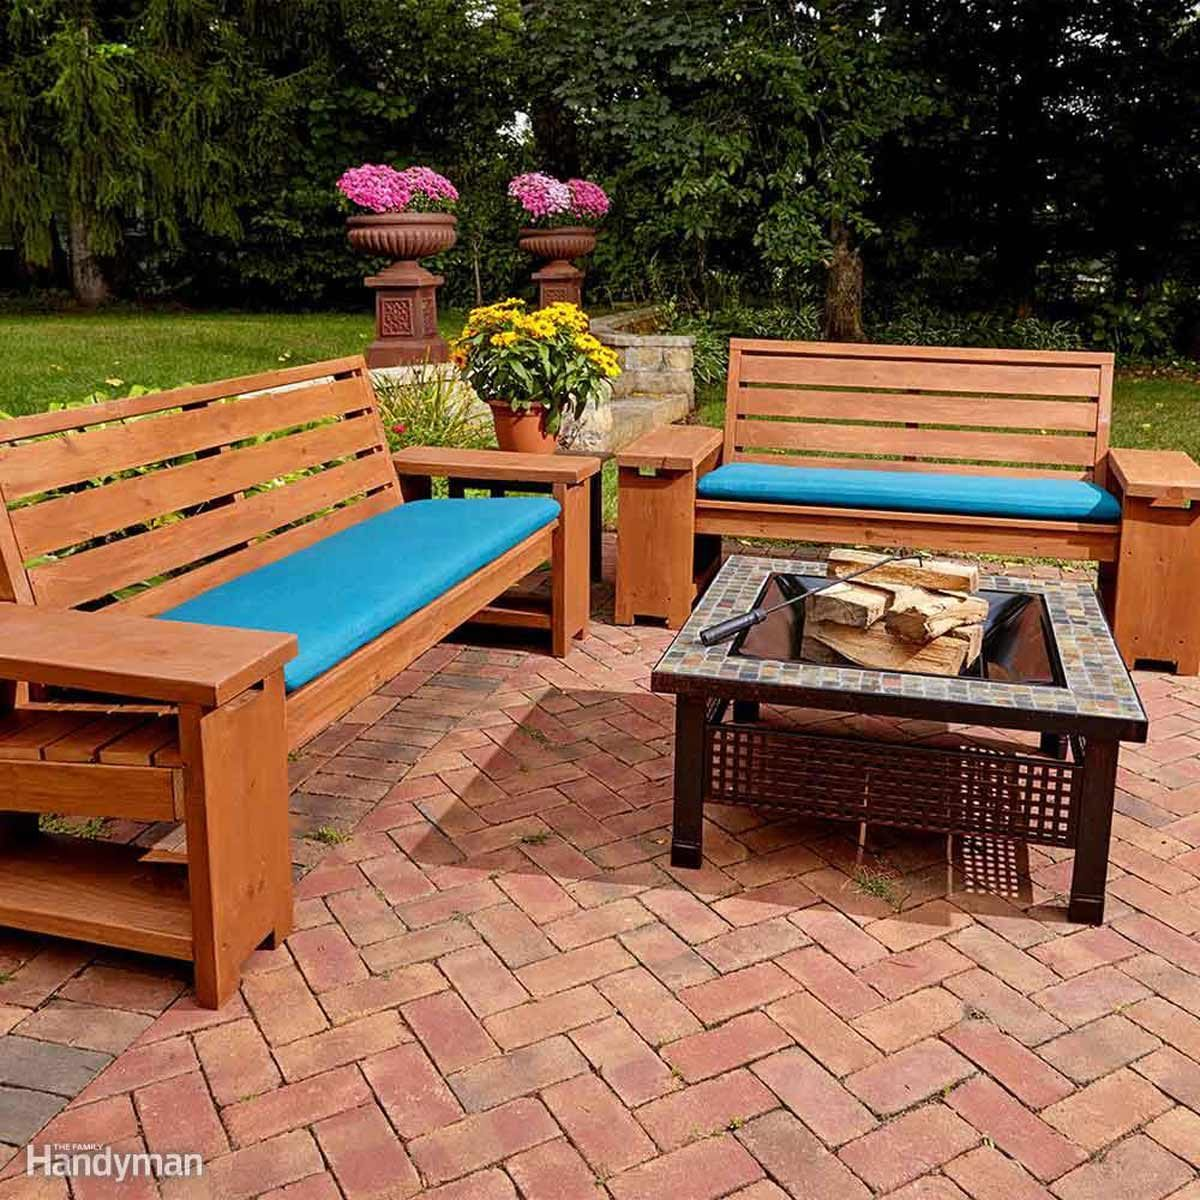 Diy Indoor Bench Seat 15 Awesome Plans For Diy Patio Furniture The Family Handyman